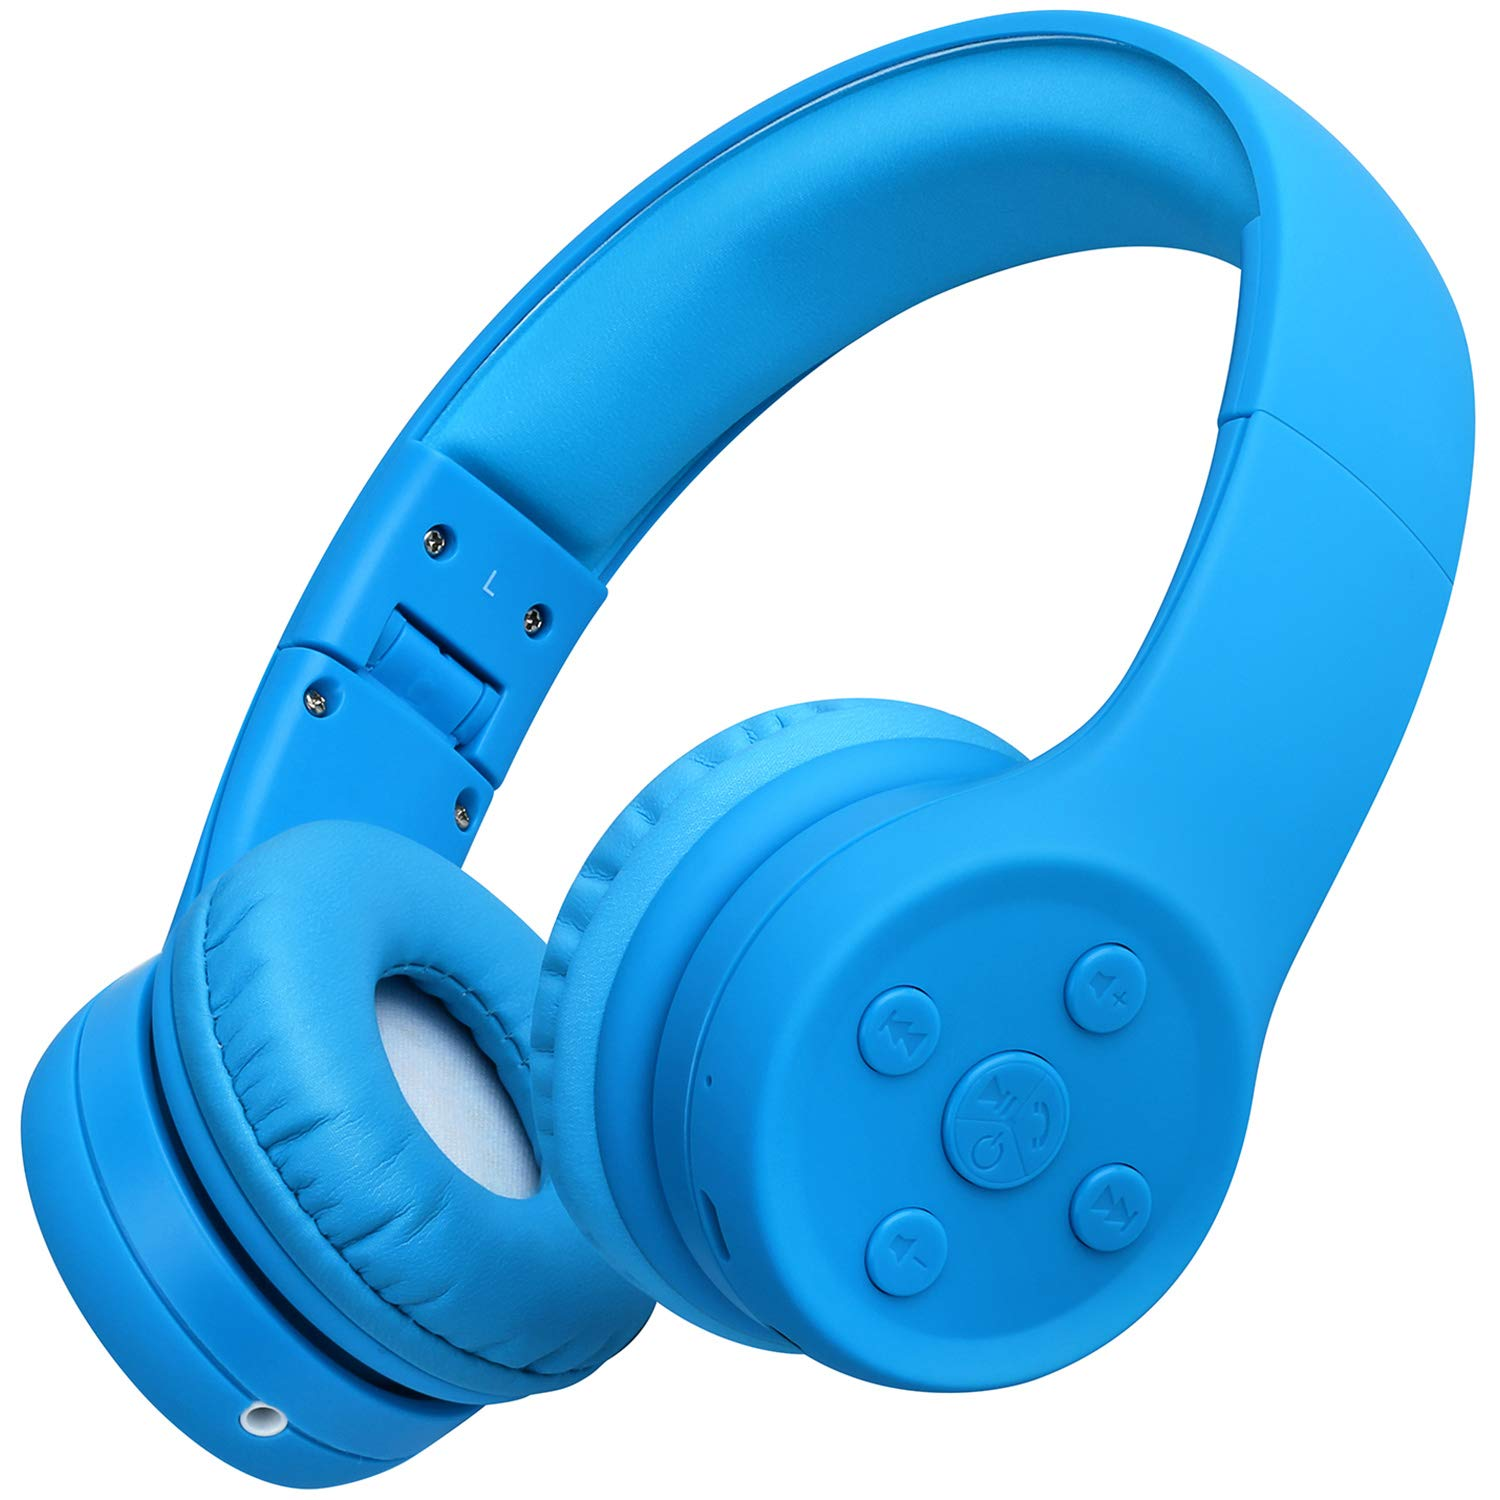 Picun Kids Bluetooth Headphones Safe Volume Limited 85dB 15 Hours Play Time Foldable Stereo Sound Headsets with Mic Wireless Headphones for Boys Children Computer Cell Phones Tablet School Game(Blue) by Picun